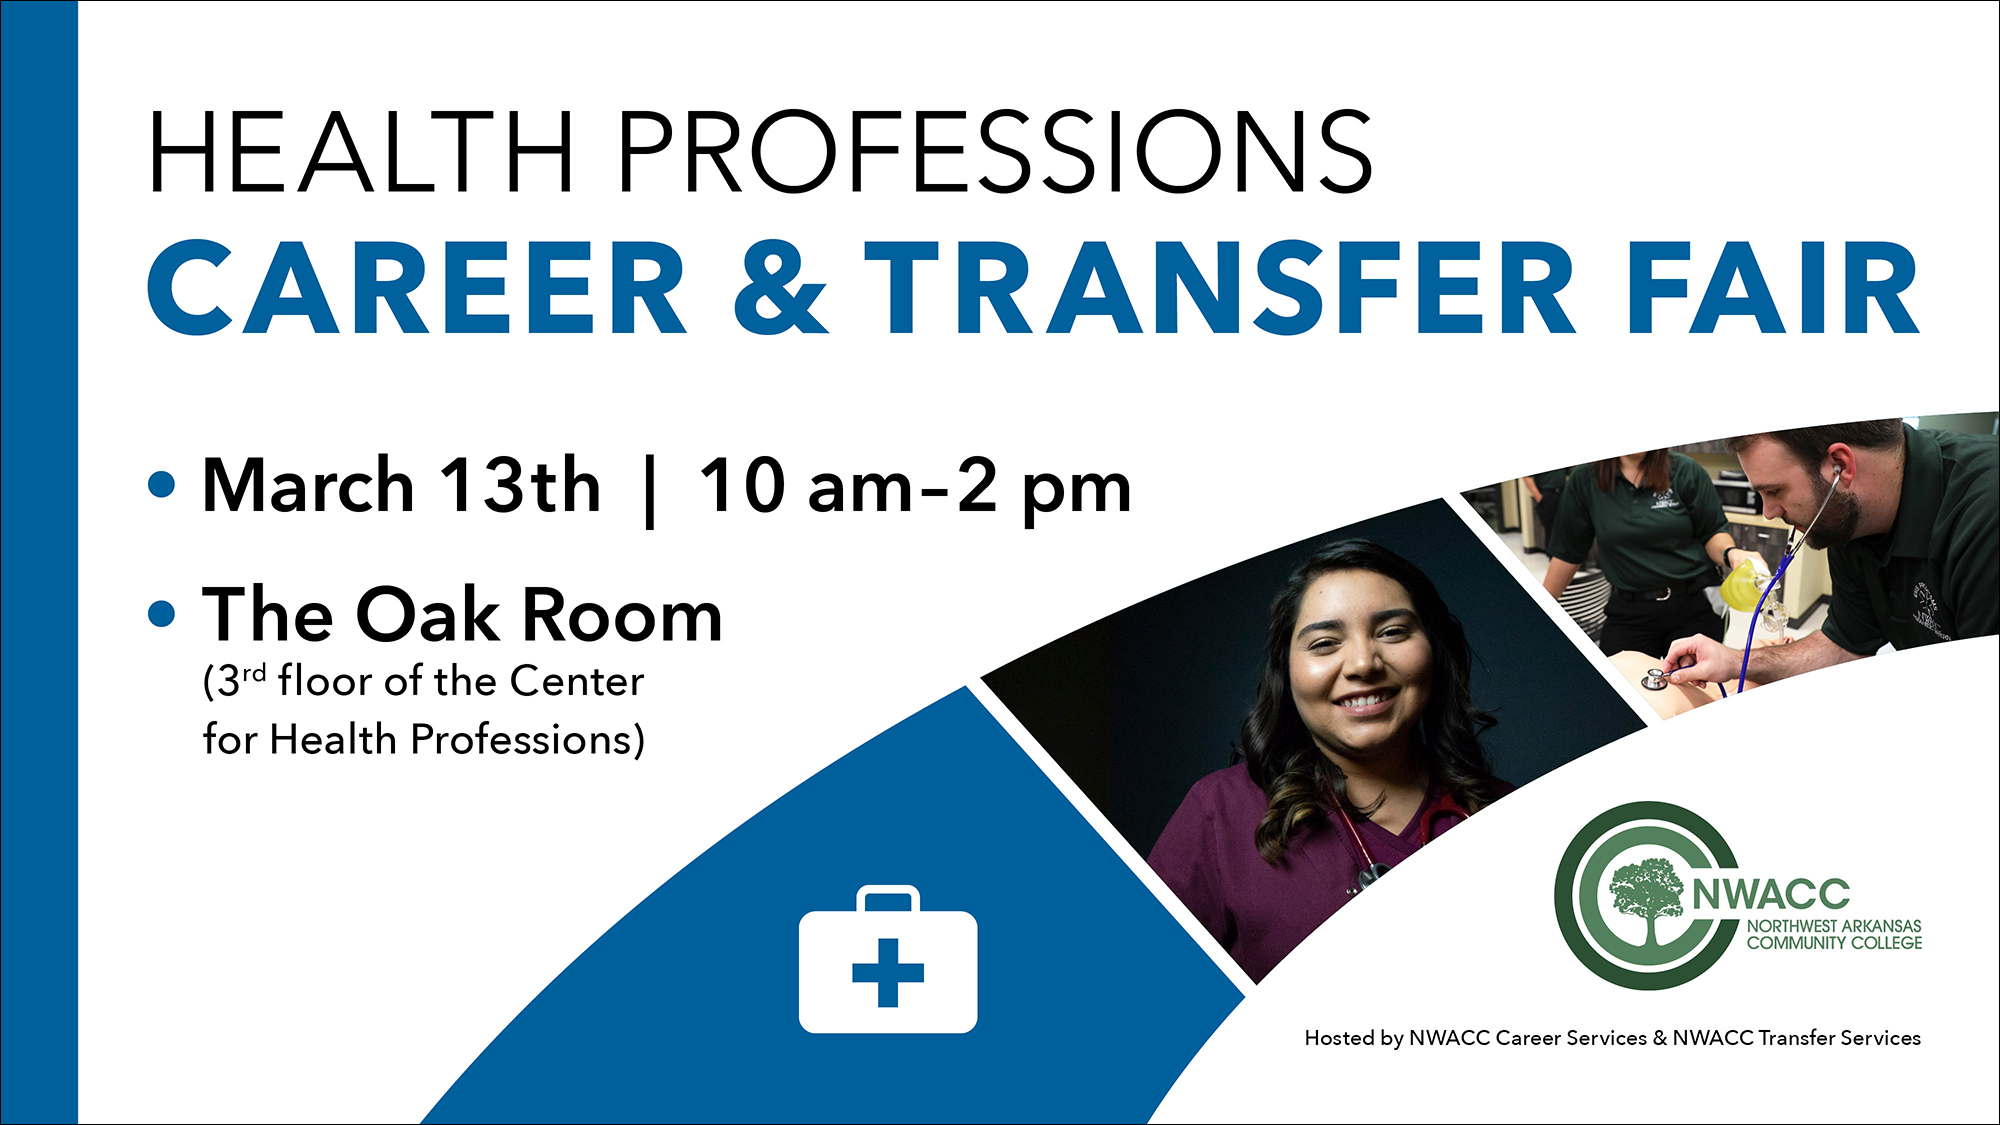 Flyer with brief event information and two photos of health professions students